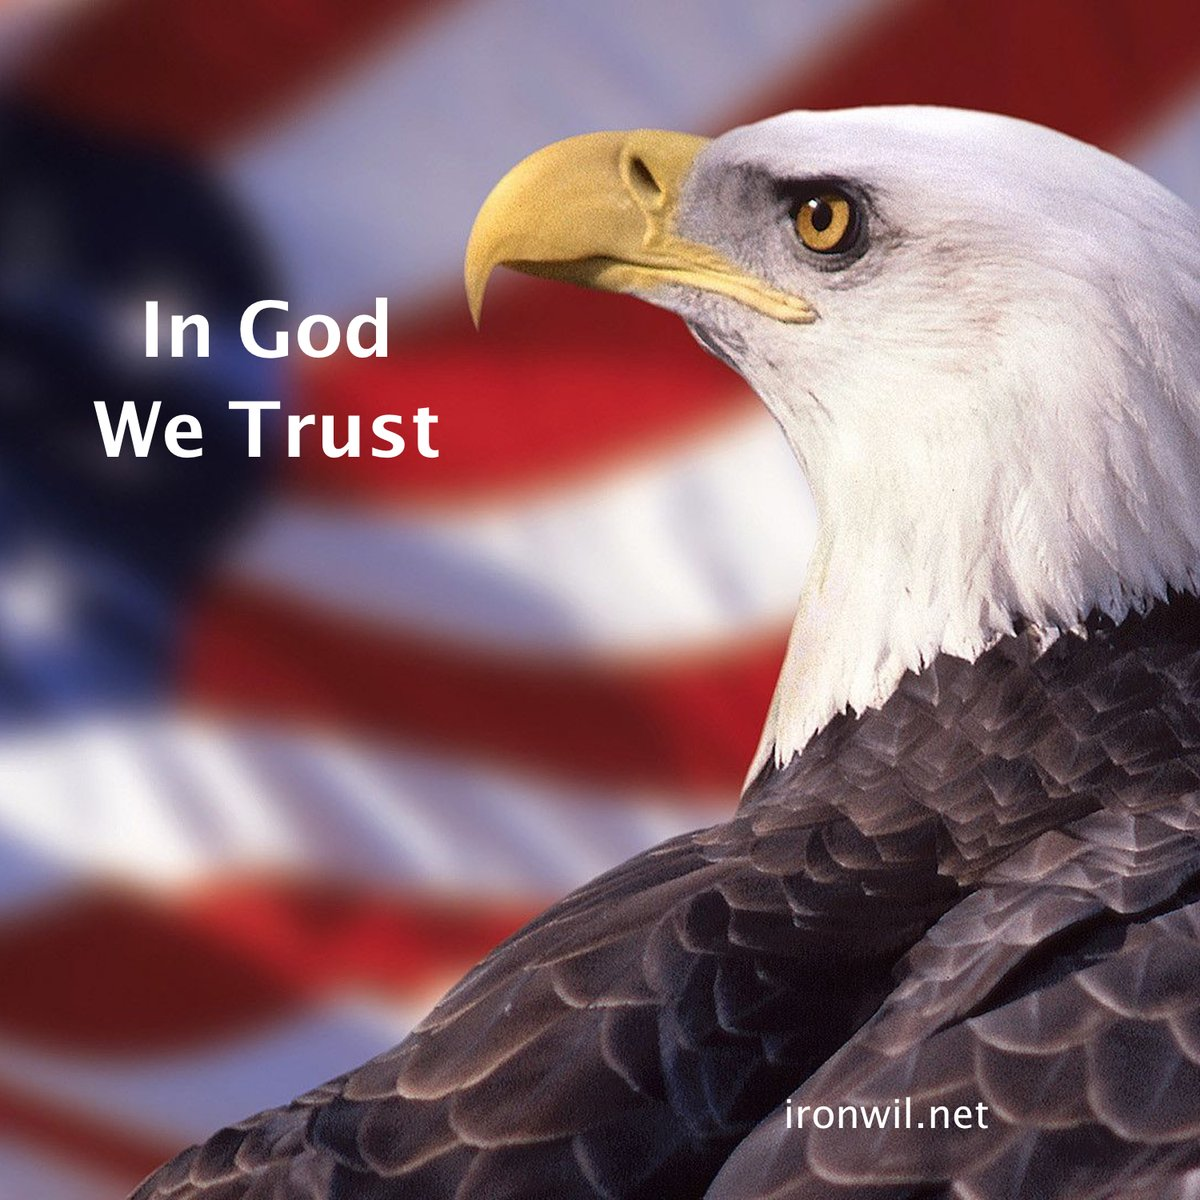 from our beginning, we believed in one thing above all, GOD the FATHER and HIS SON JESUS CHRIST. #America #FaithinGOD #FaithinCHRIST #ir0nw1l #Motivation #Autodidact #Ambition #SuperApp #BusinessOwner #MakeMoney #Entrepreneur #3KeystoWealth #TLYAW<br>http://pic.twitter.com/Vd0zGZm8Mq